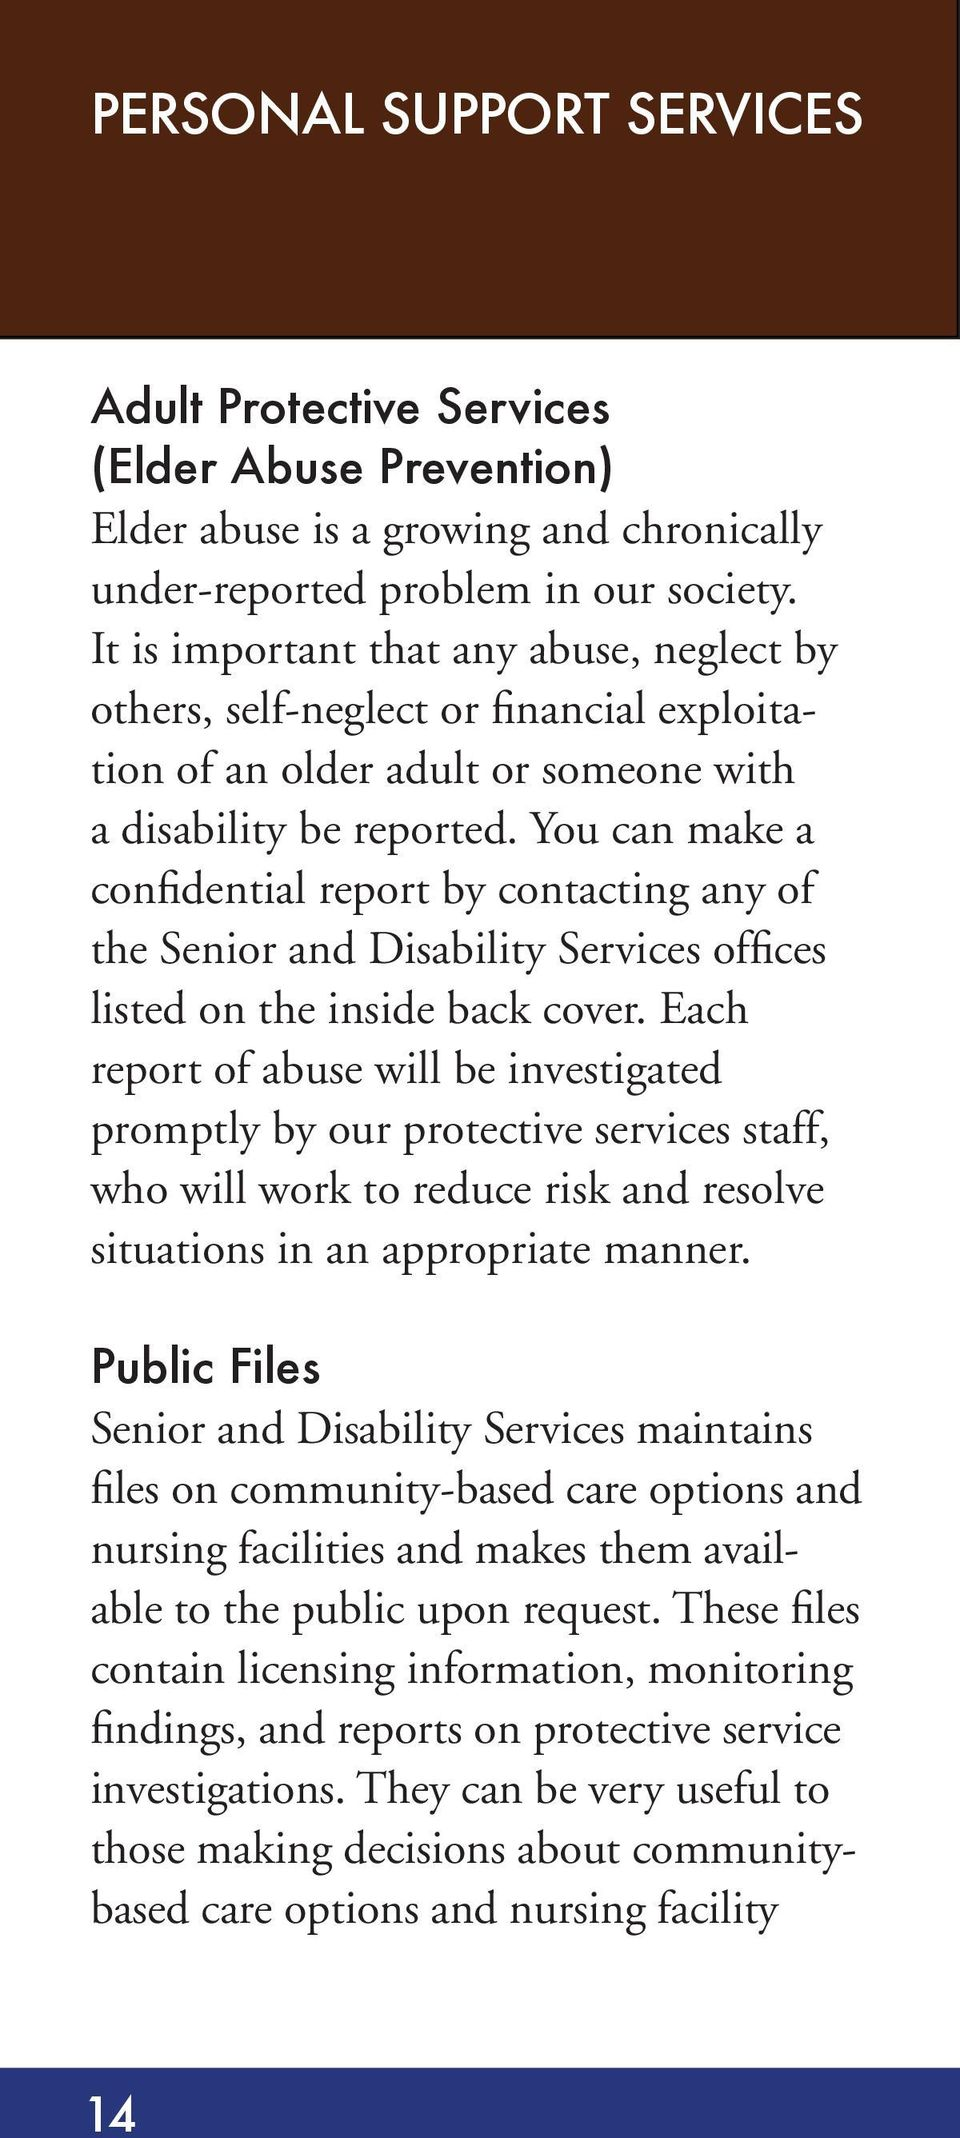 You can make a confidential report by contacting any of the Senior and Disability Services offices listed on the inside back cover.